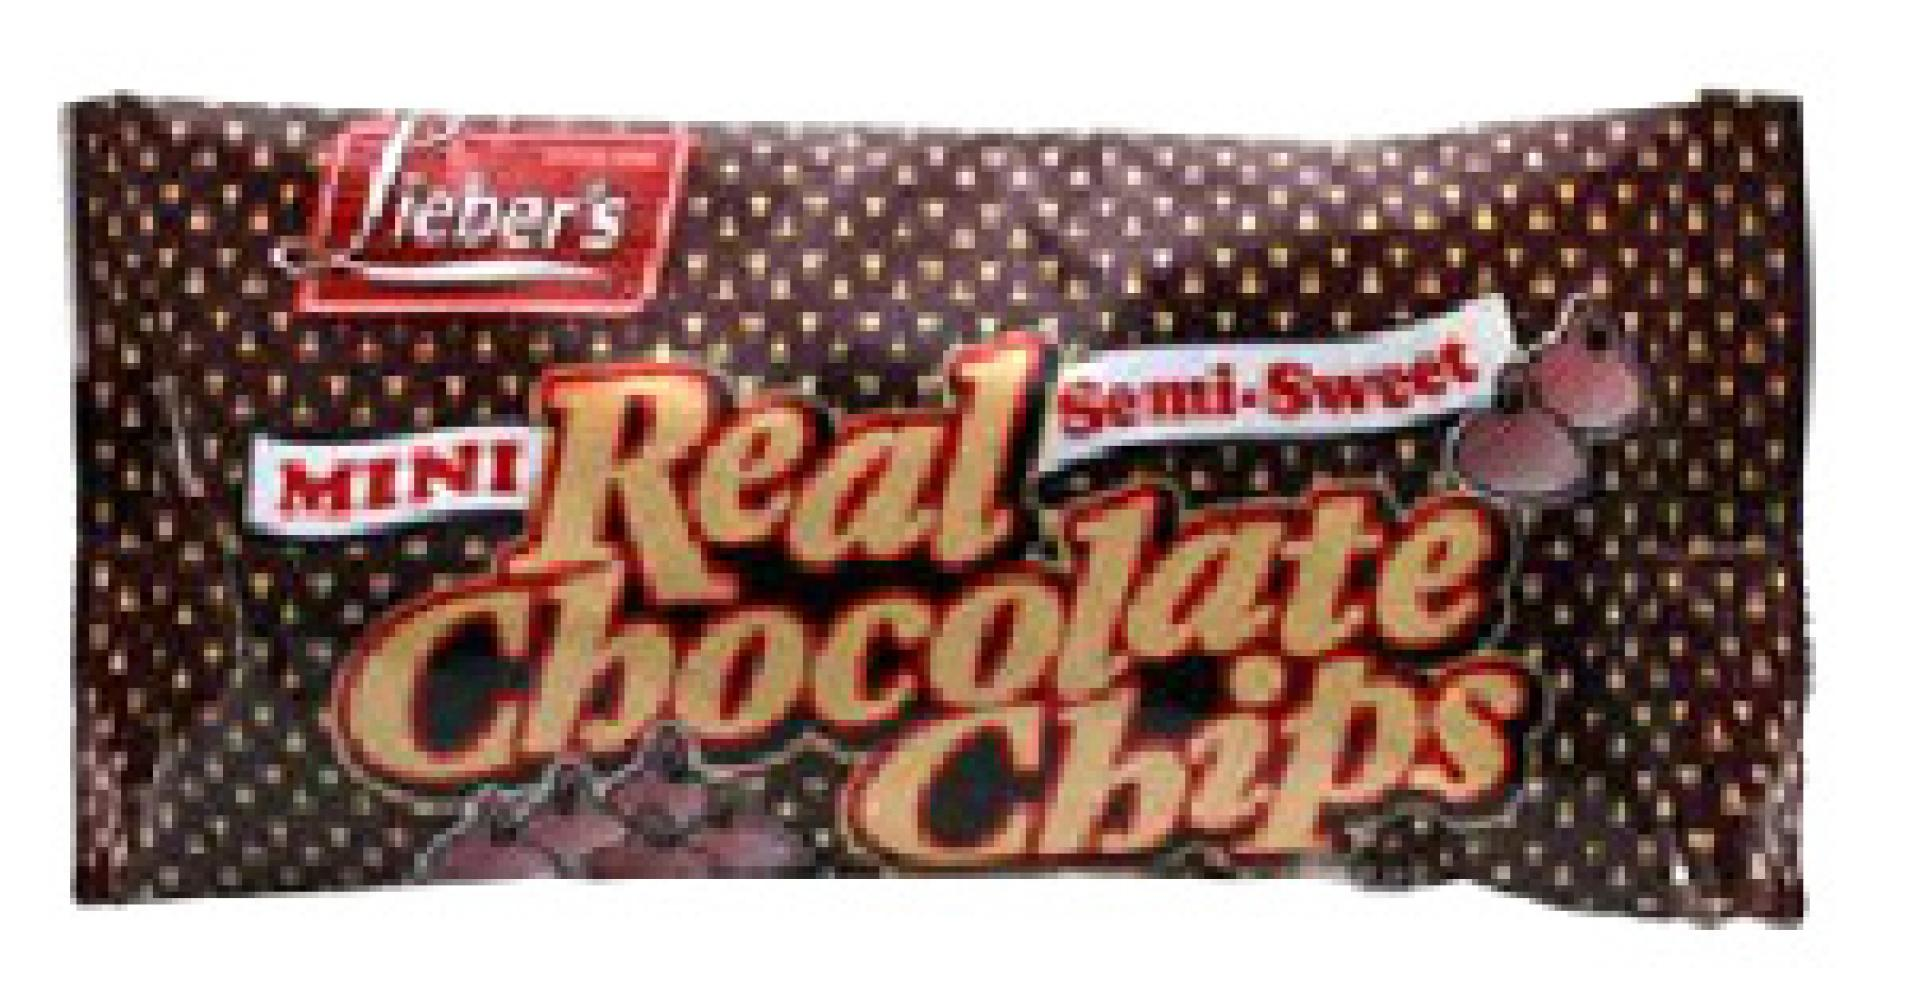 Lieber's Mini Semisweet Chocolate Chips 9 oz